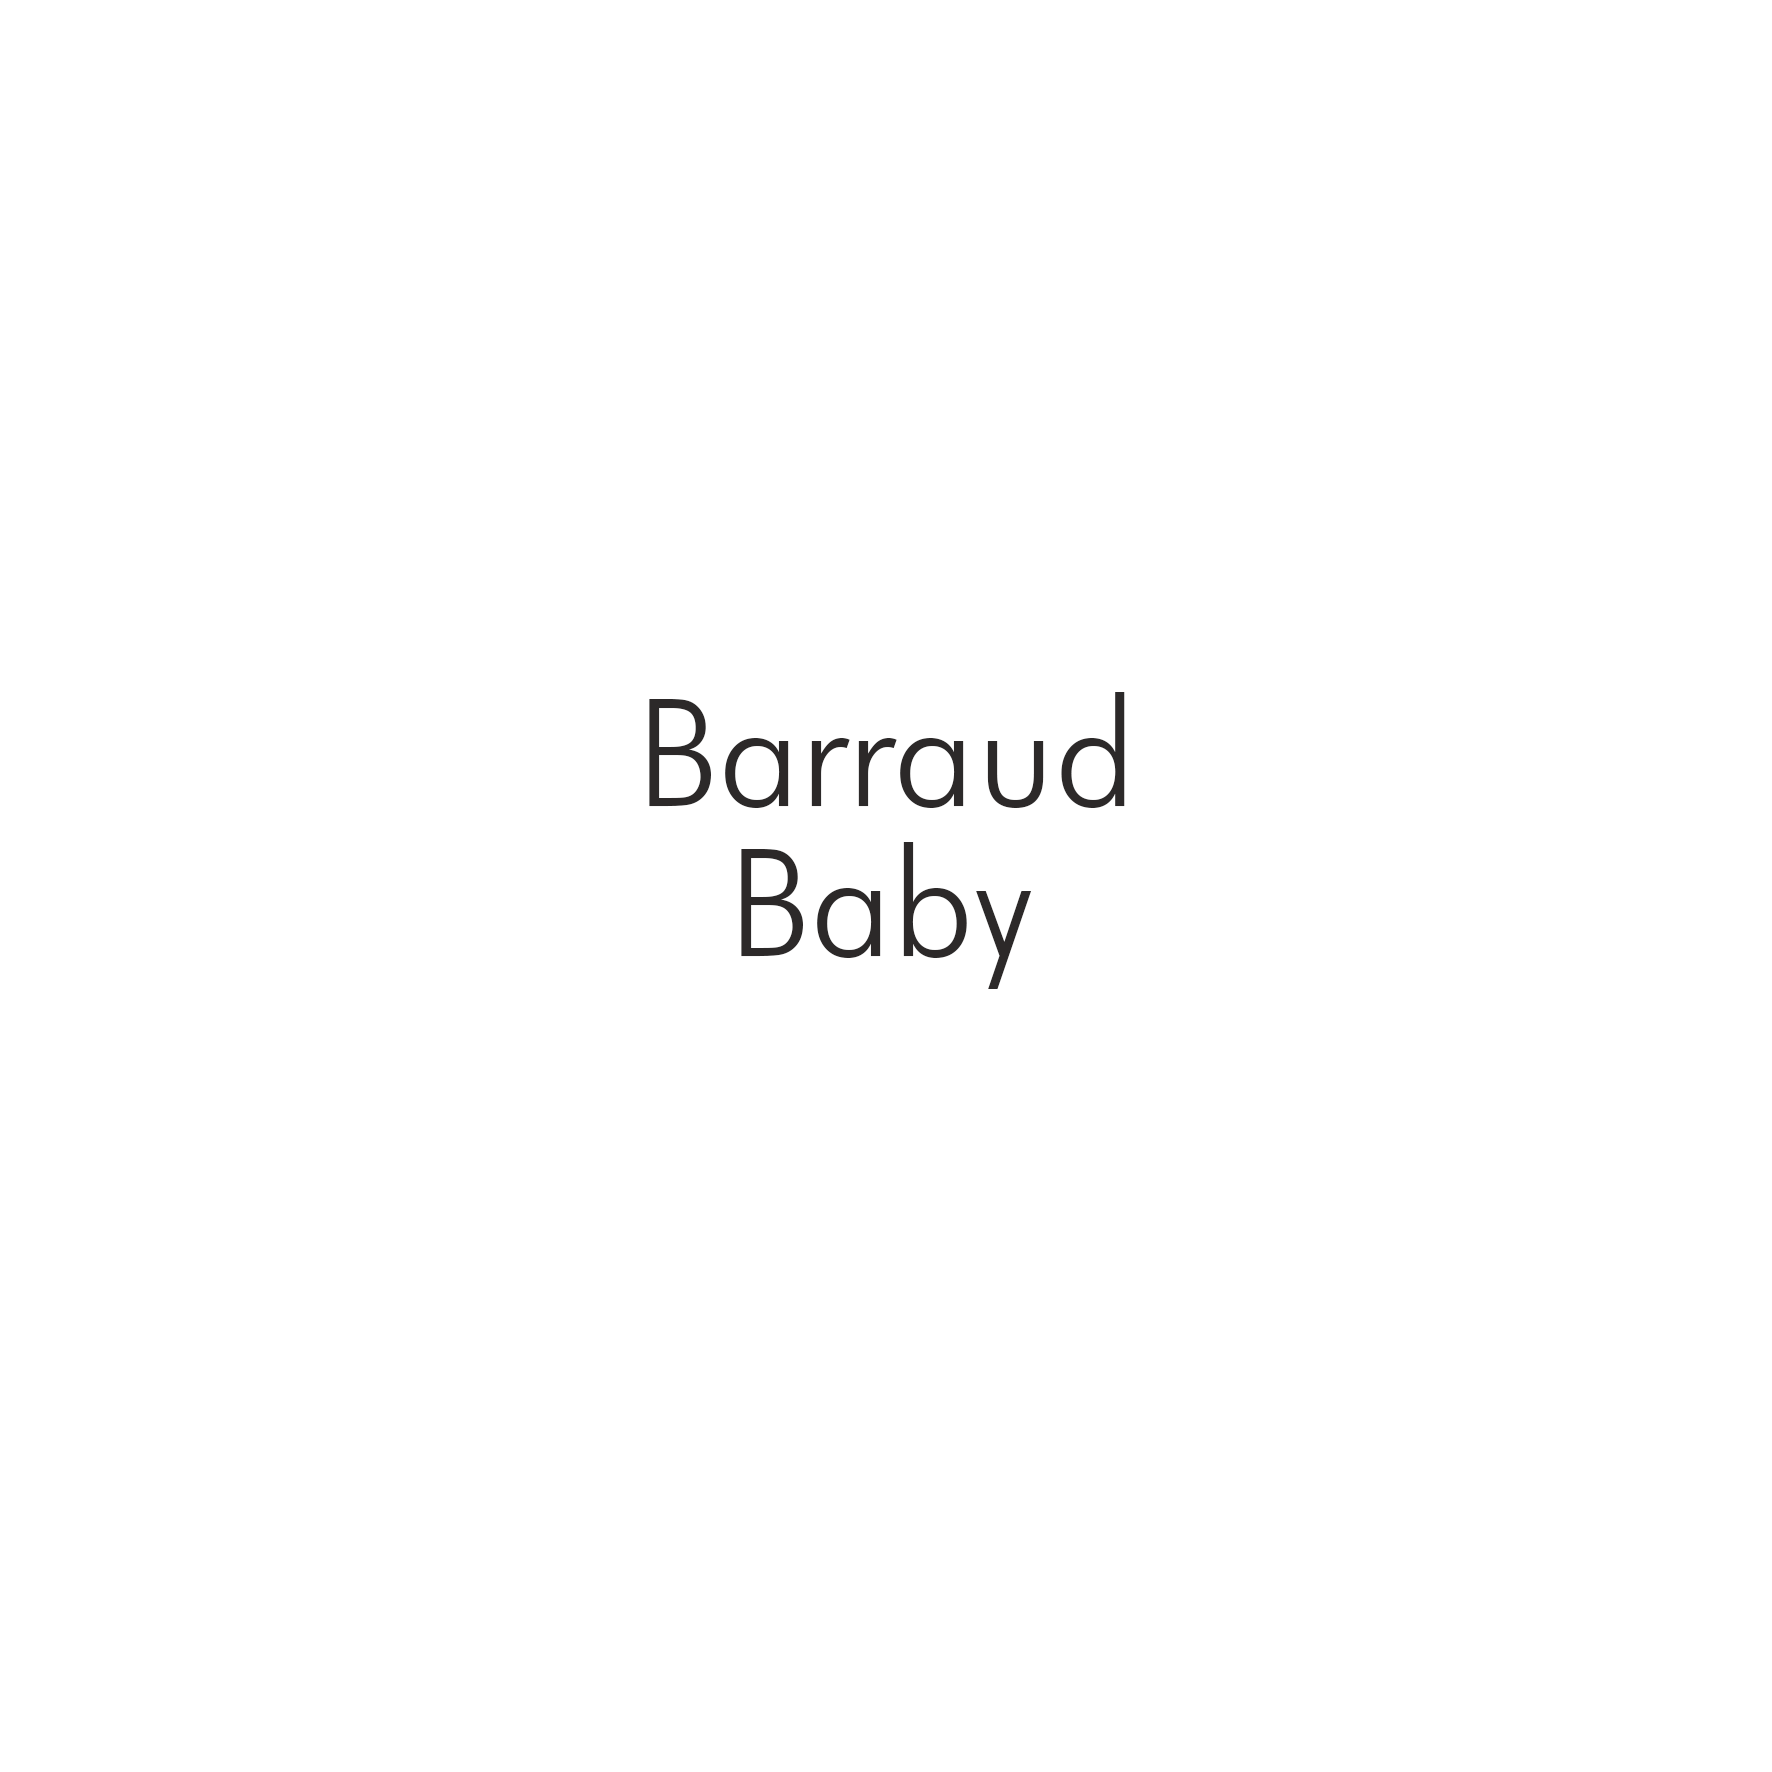 Bby BArraud.png